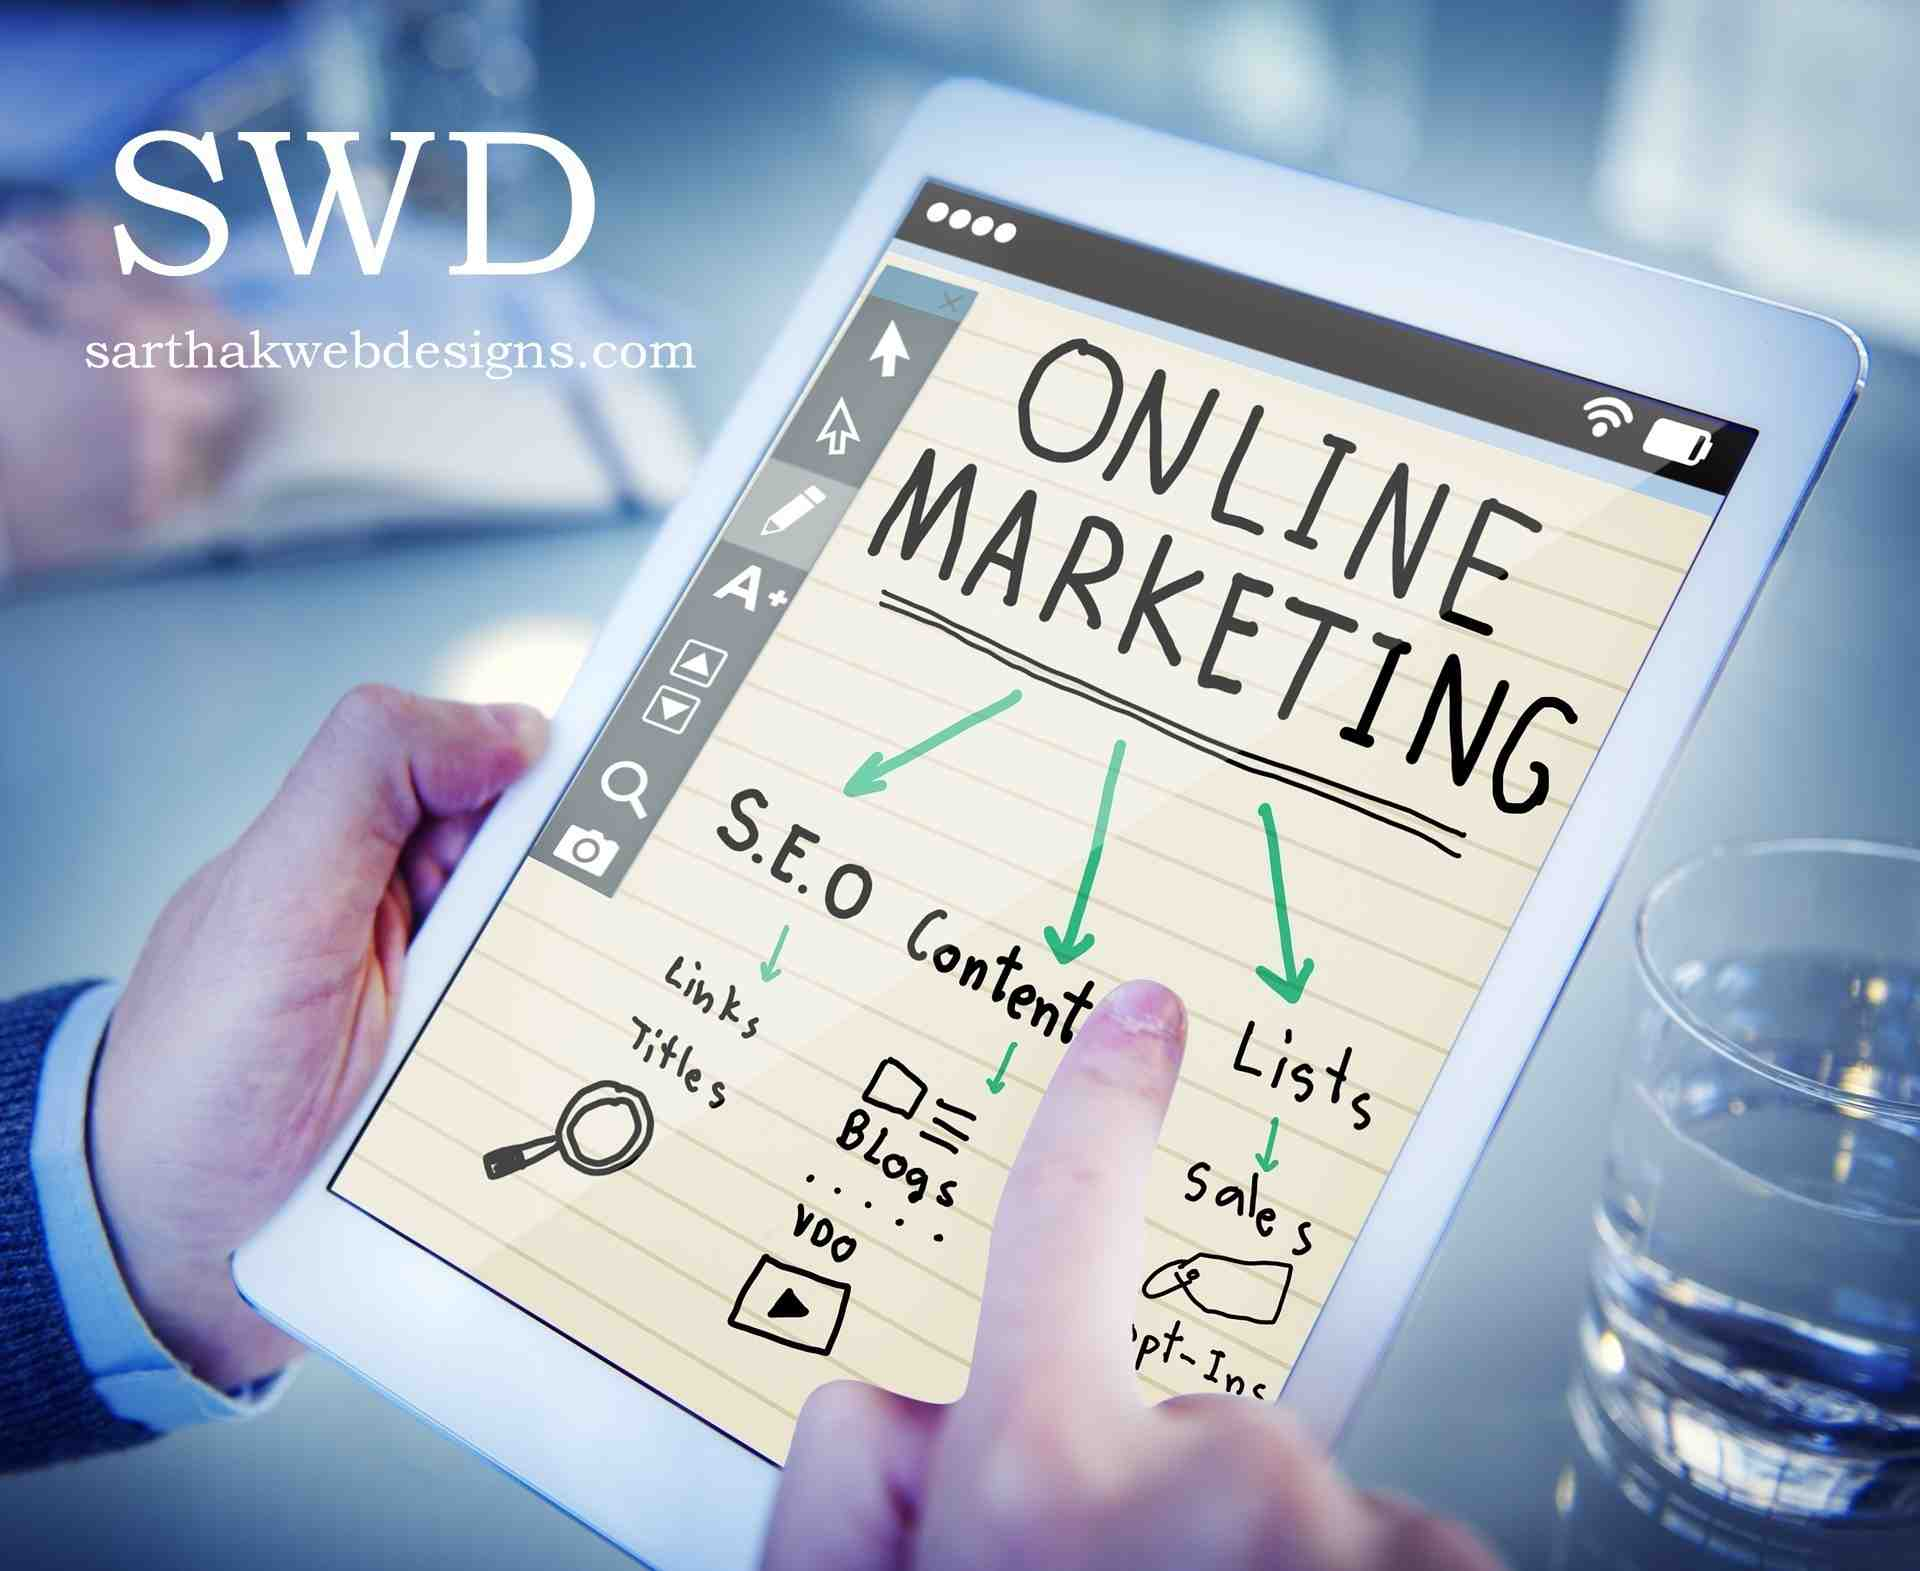 online-marketing-swd-image2017.jpg